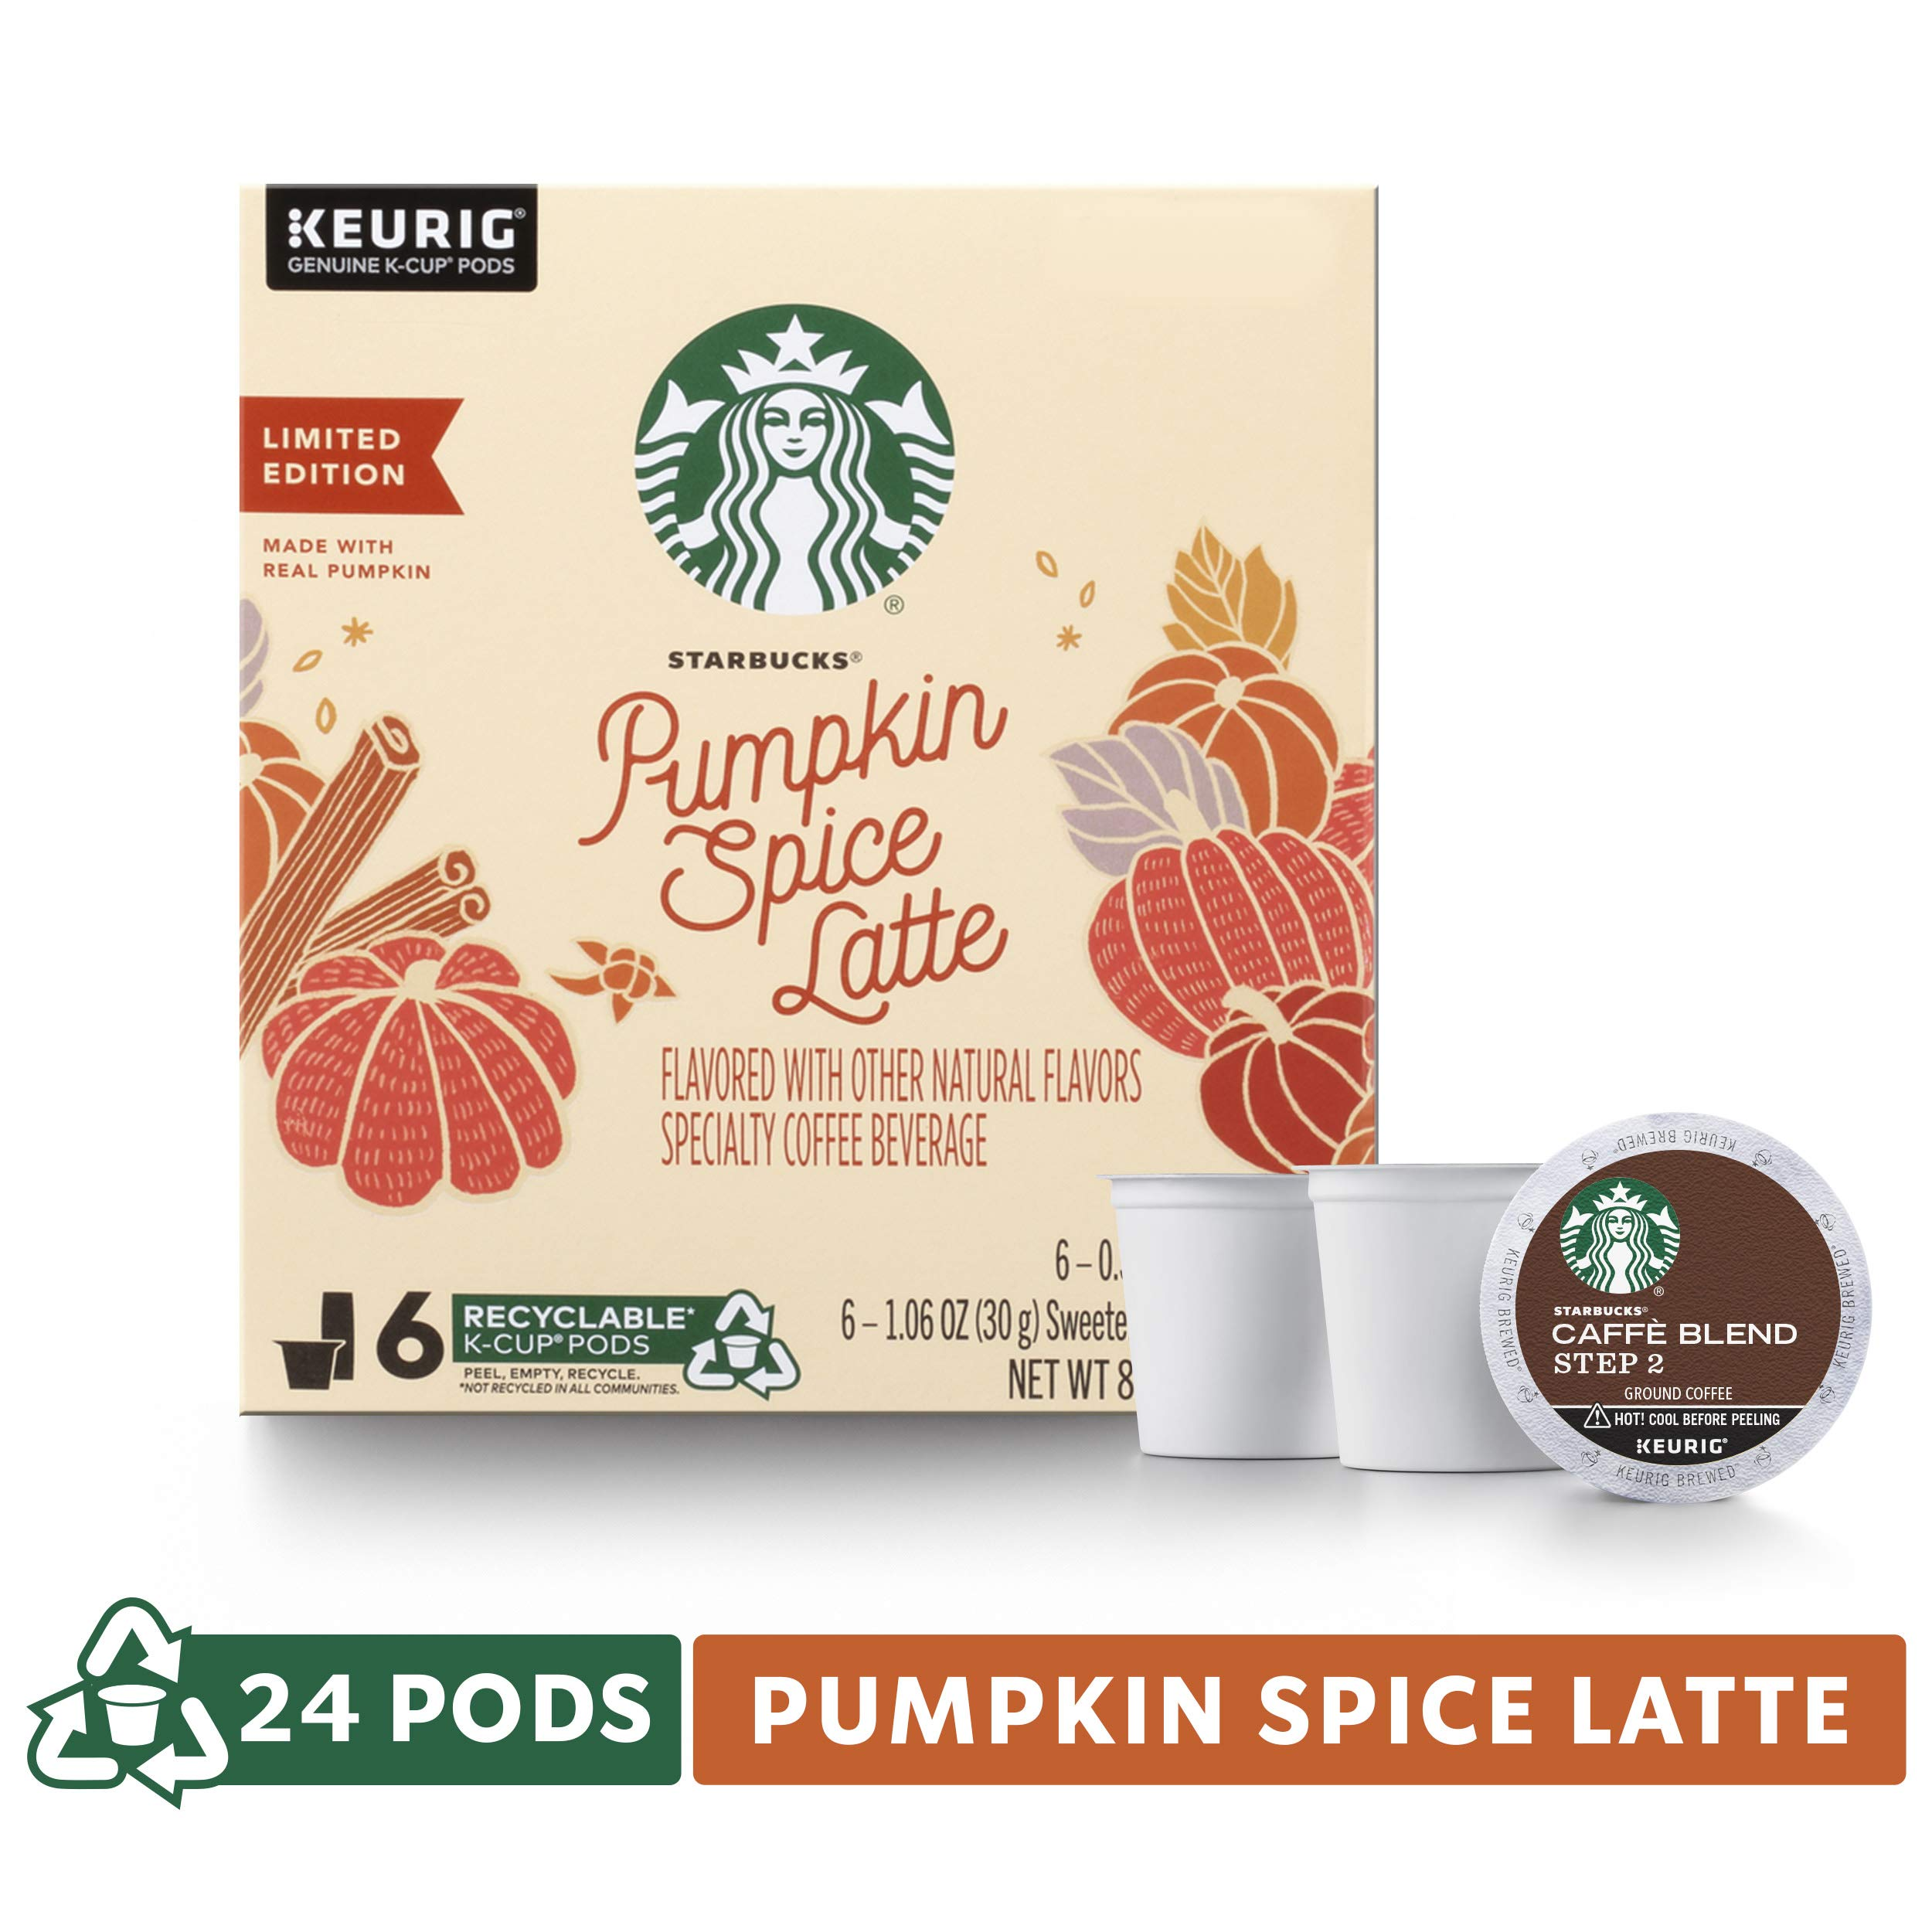 Starbucks Pumpkin Spice Caffe Latte Single-Cup Coffee for Keurig Brewers, 4 Boxes of 6 (24 Total K-Cup Pods) by Starbucks